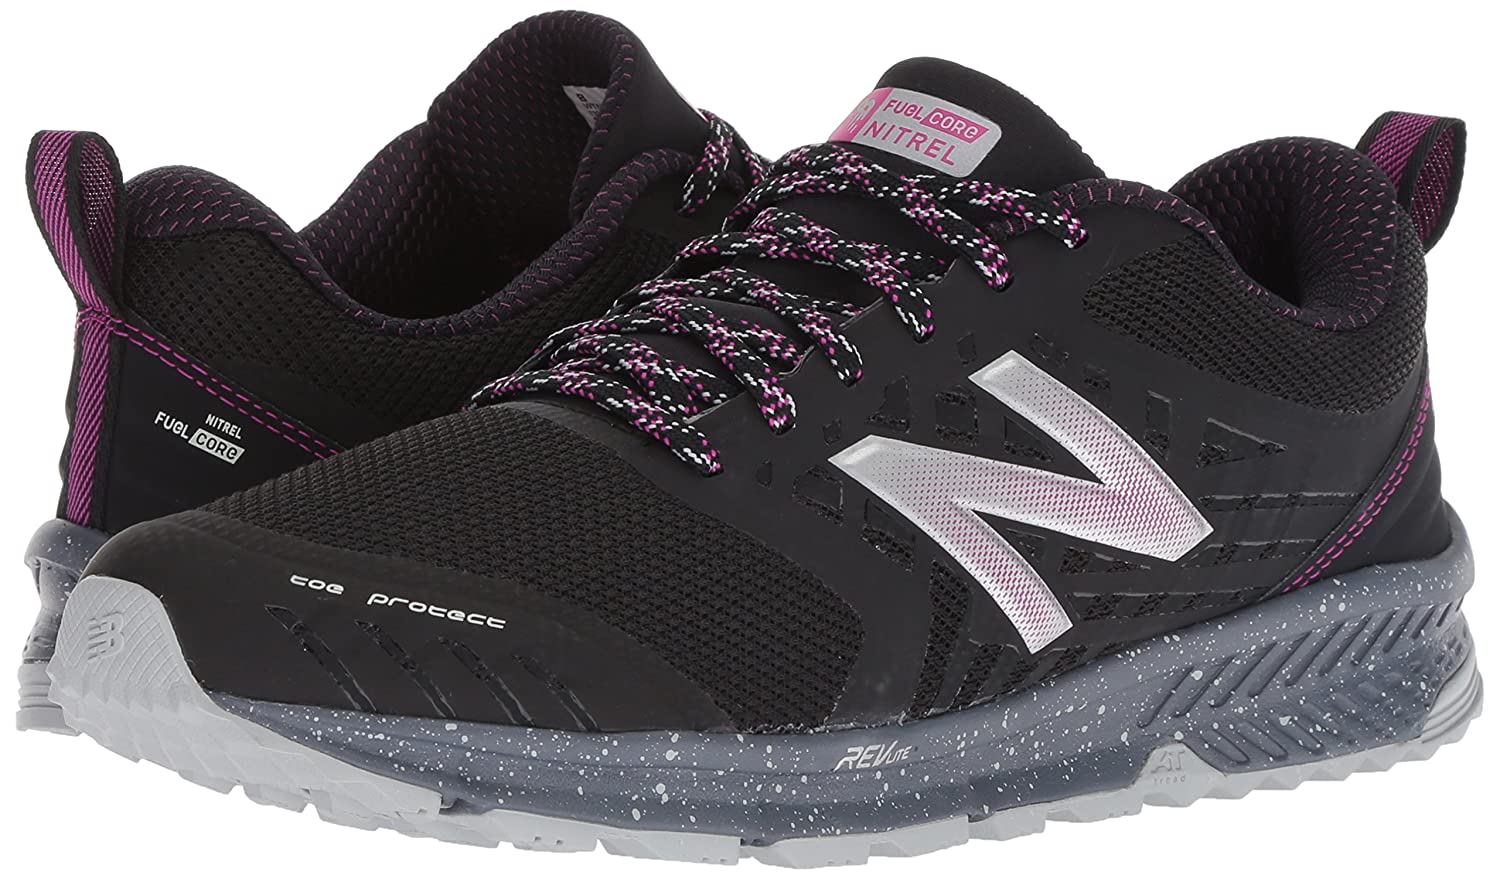 58568d7c17 Amazon.com | New Balance Women's Nitrel v1 FuelCore Trail Running Shoe,  Black/Poison Berry, 7.5 D US | Trail Running